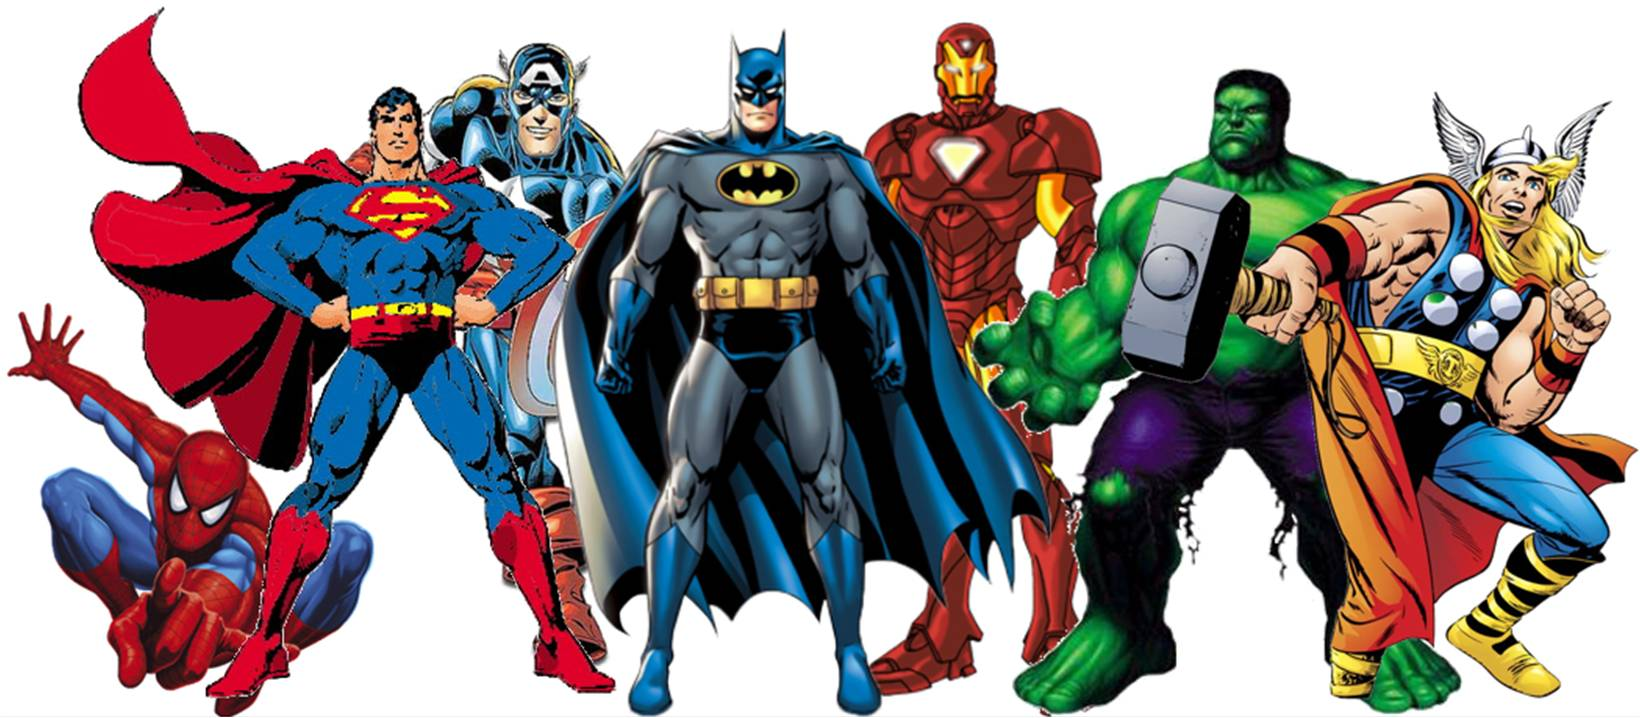 superheroes, iron man, marvel, avengers, batman, spiderman, thor